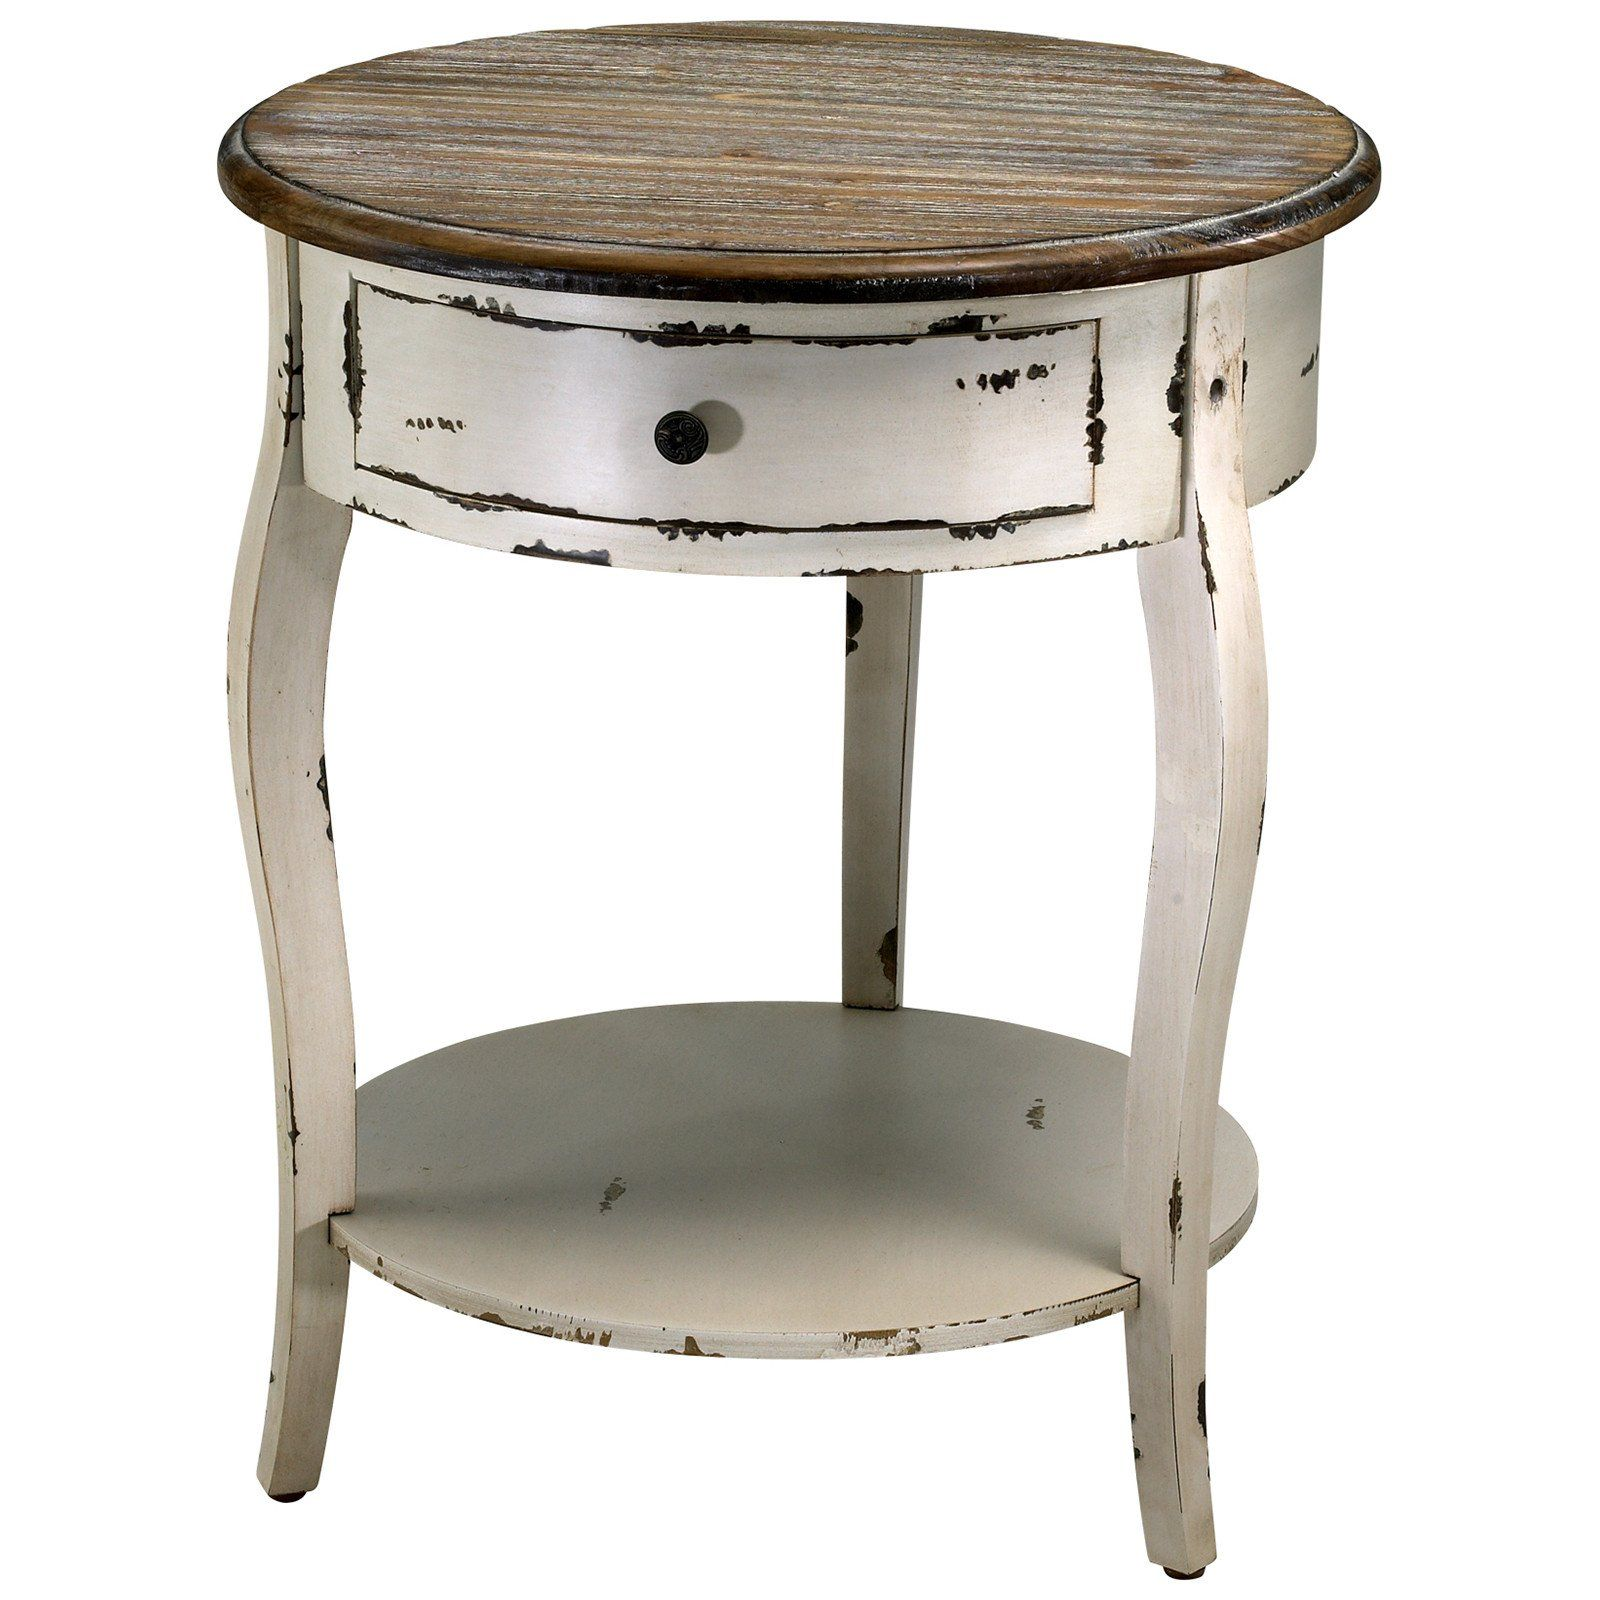 abelard side table distressed white and gray products round wood end tables ashley north shore leather sofa whalen bookcase media accent cabinet bolero dining chairs mirrored